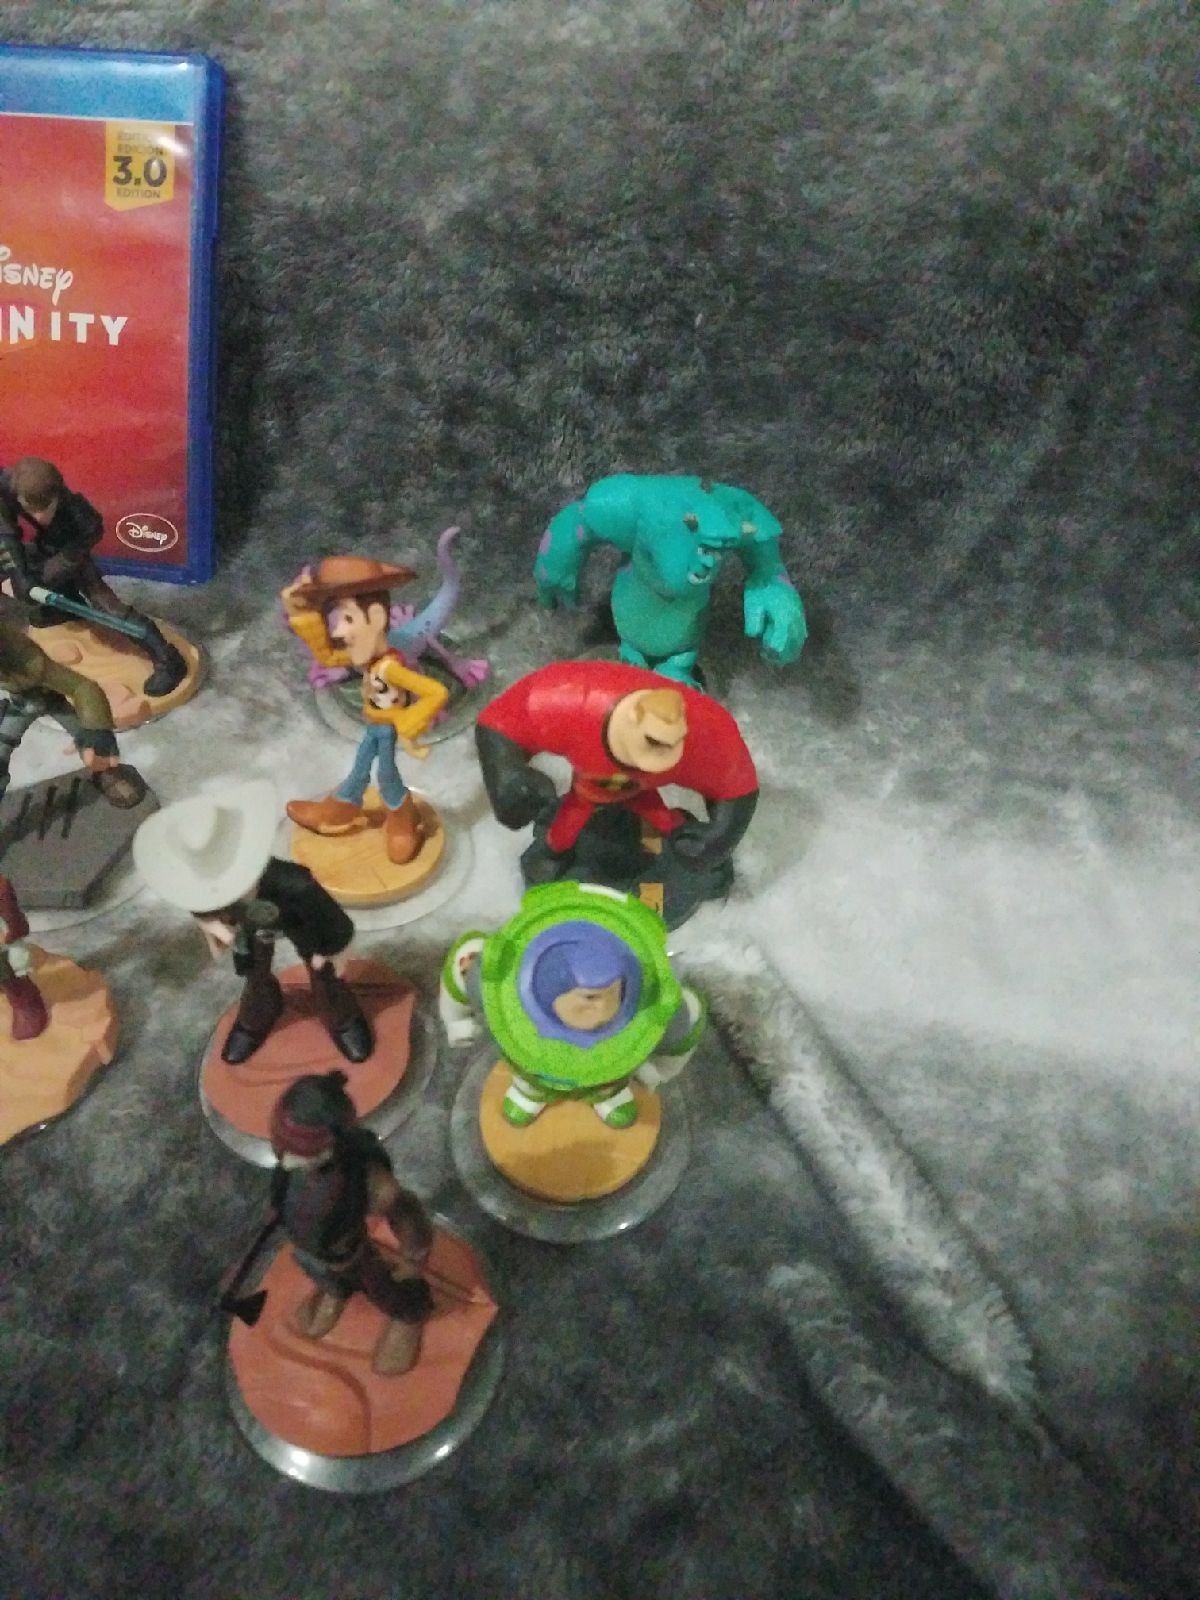 Disney Infinity collection